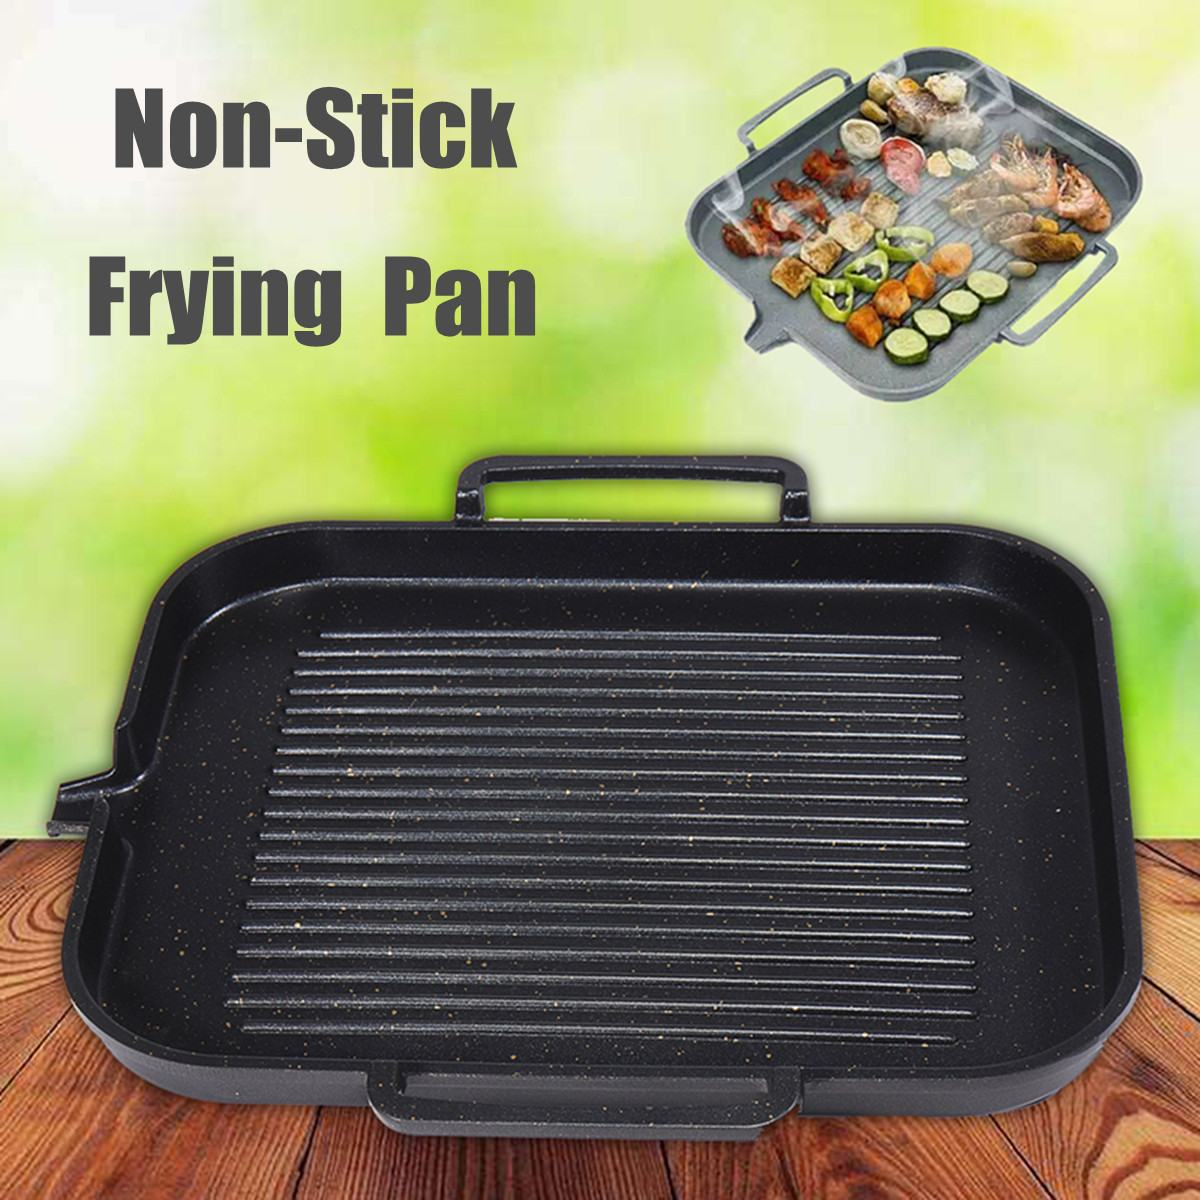 BBQ Barbecue Aluminum Frying Grill Pan Plate Non Stick Coating Cookware Induction Compatible Kitchen Cooking BBQ Pan 2-4 People